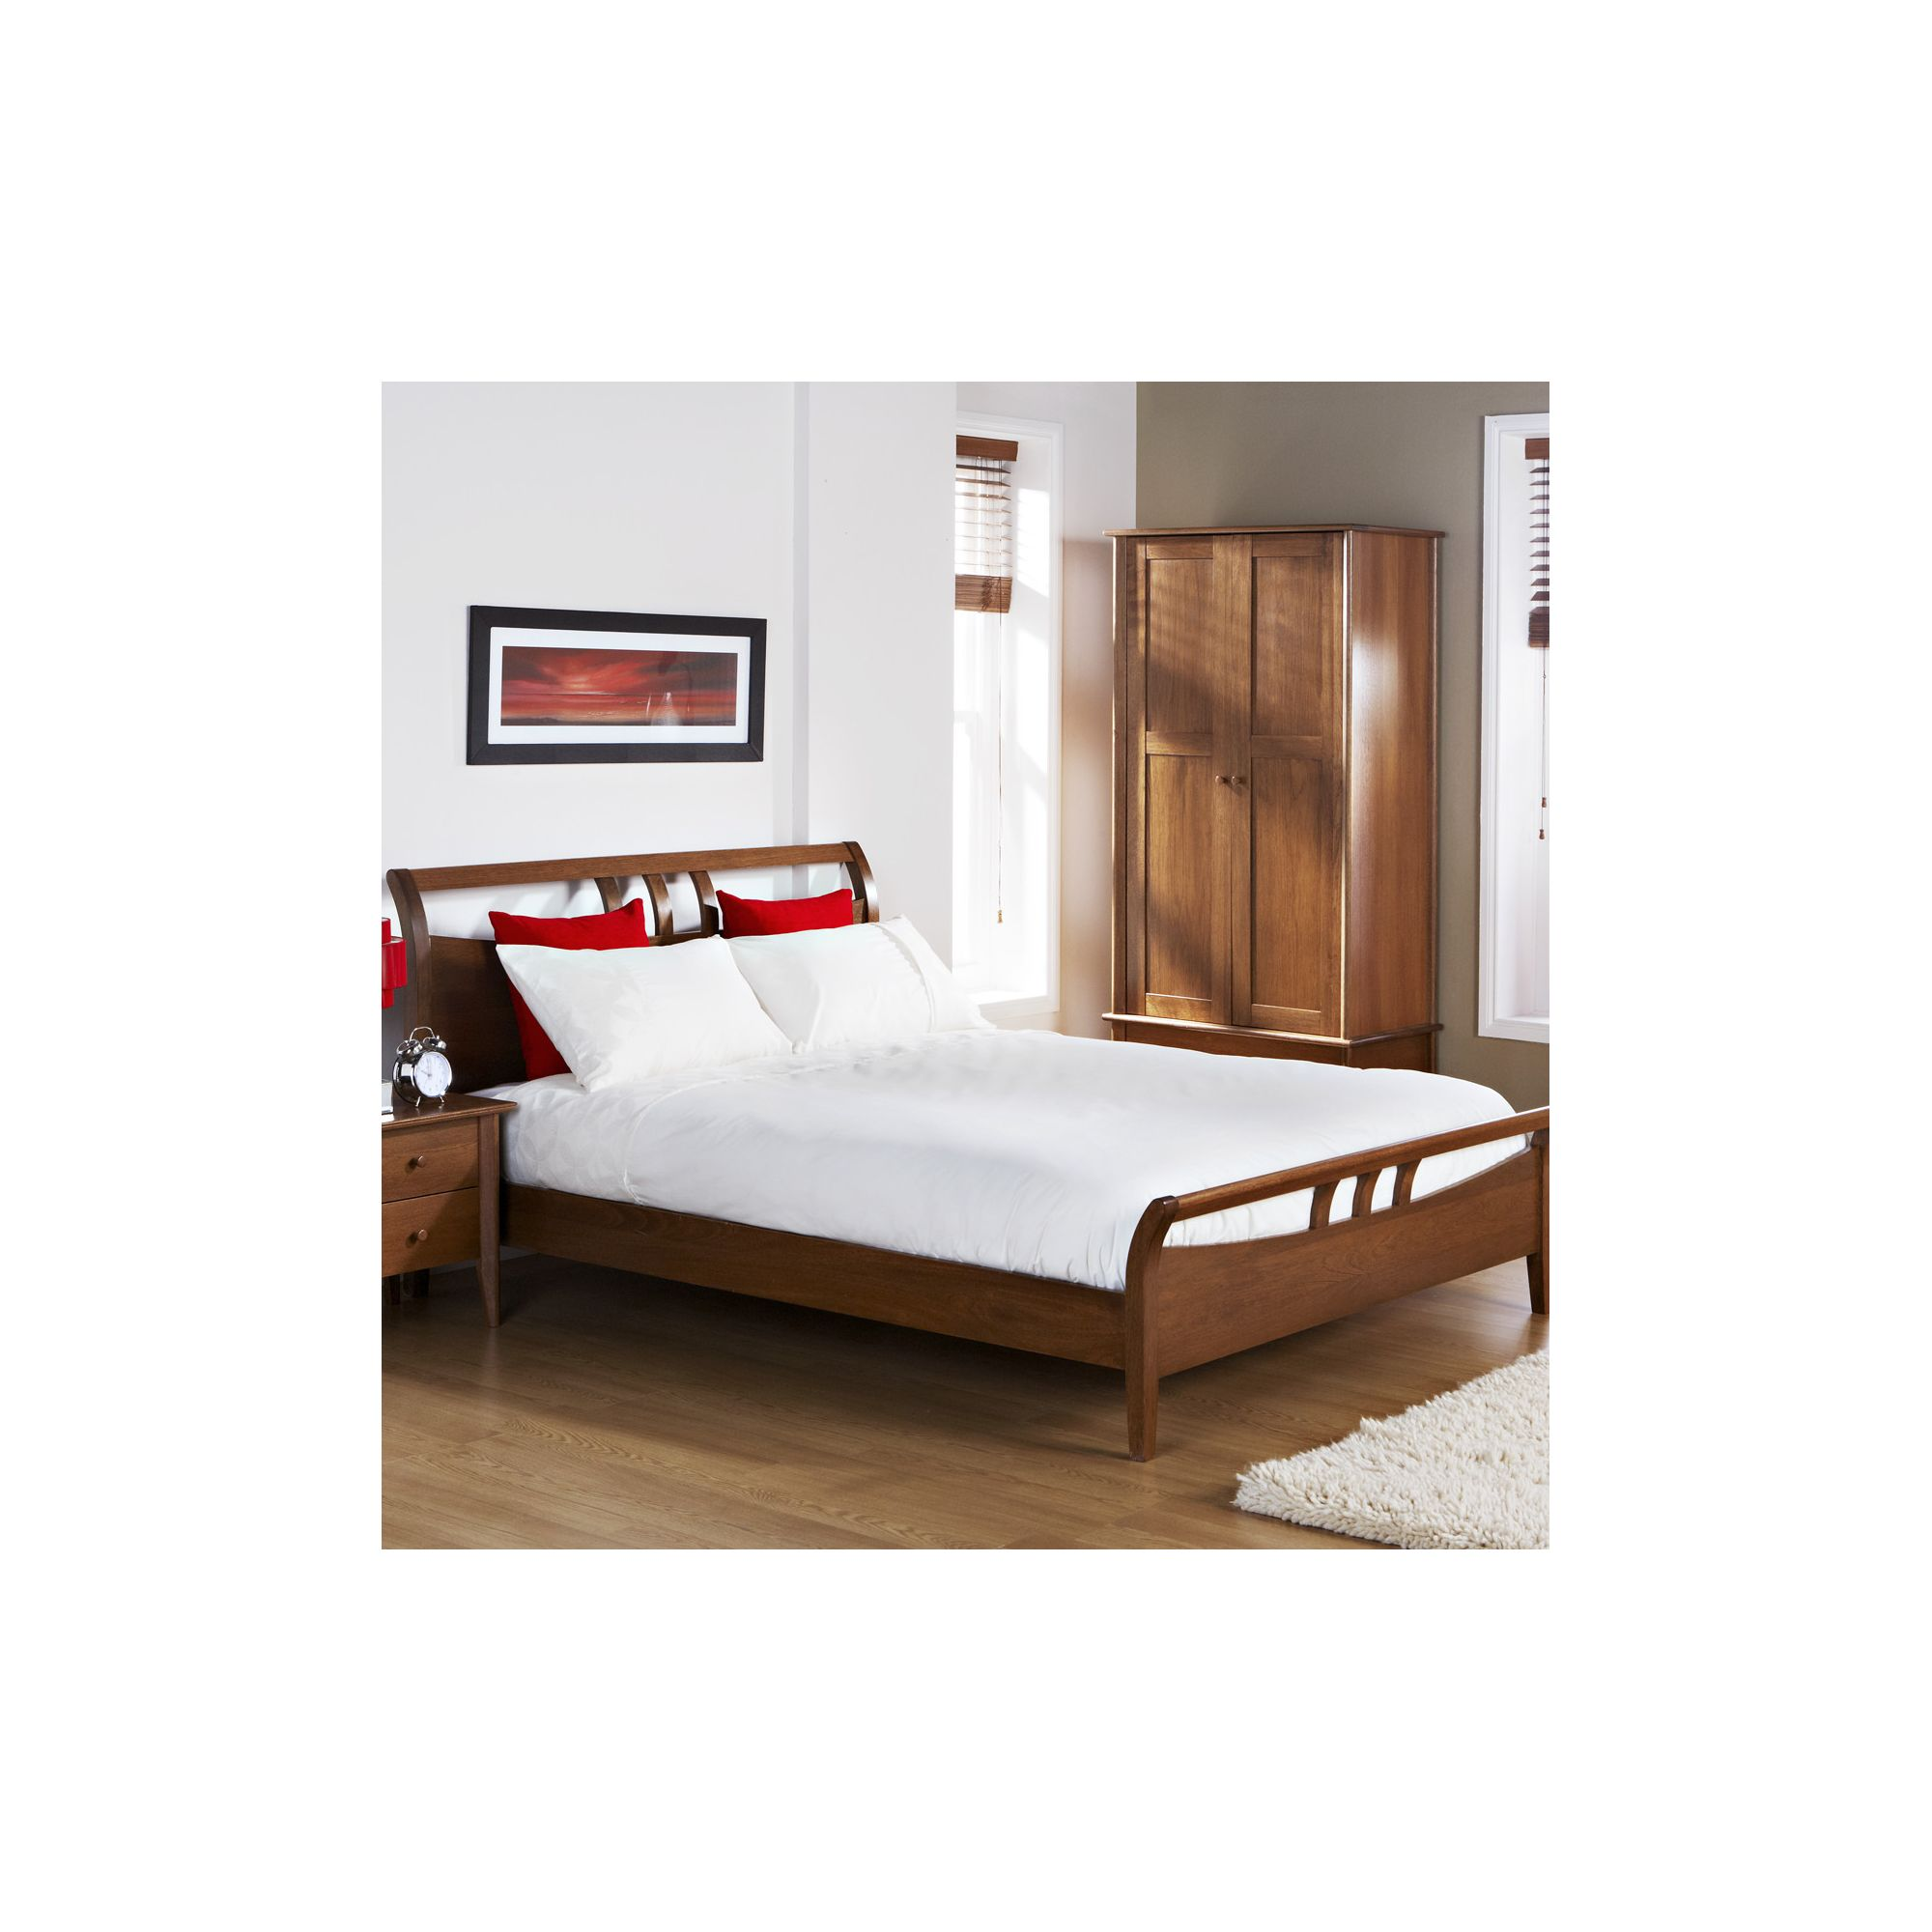 Elements Celia Double Bed at Tesco Direct